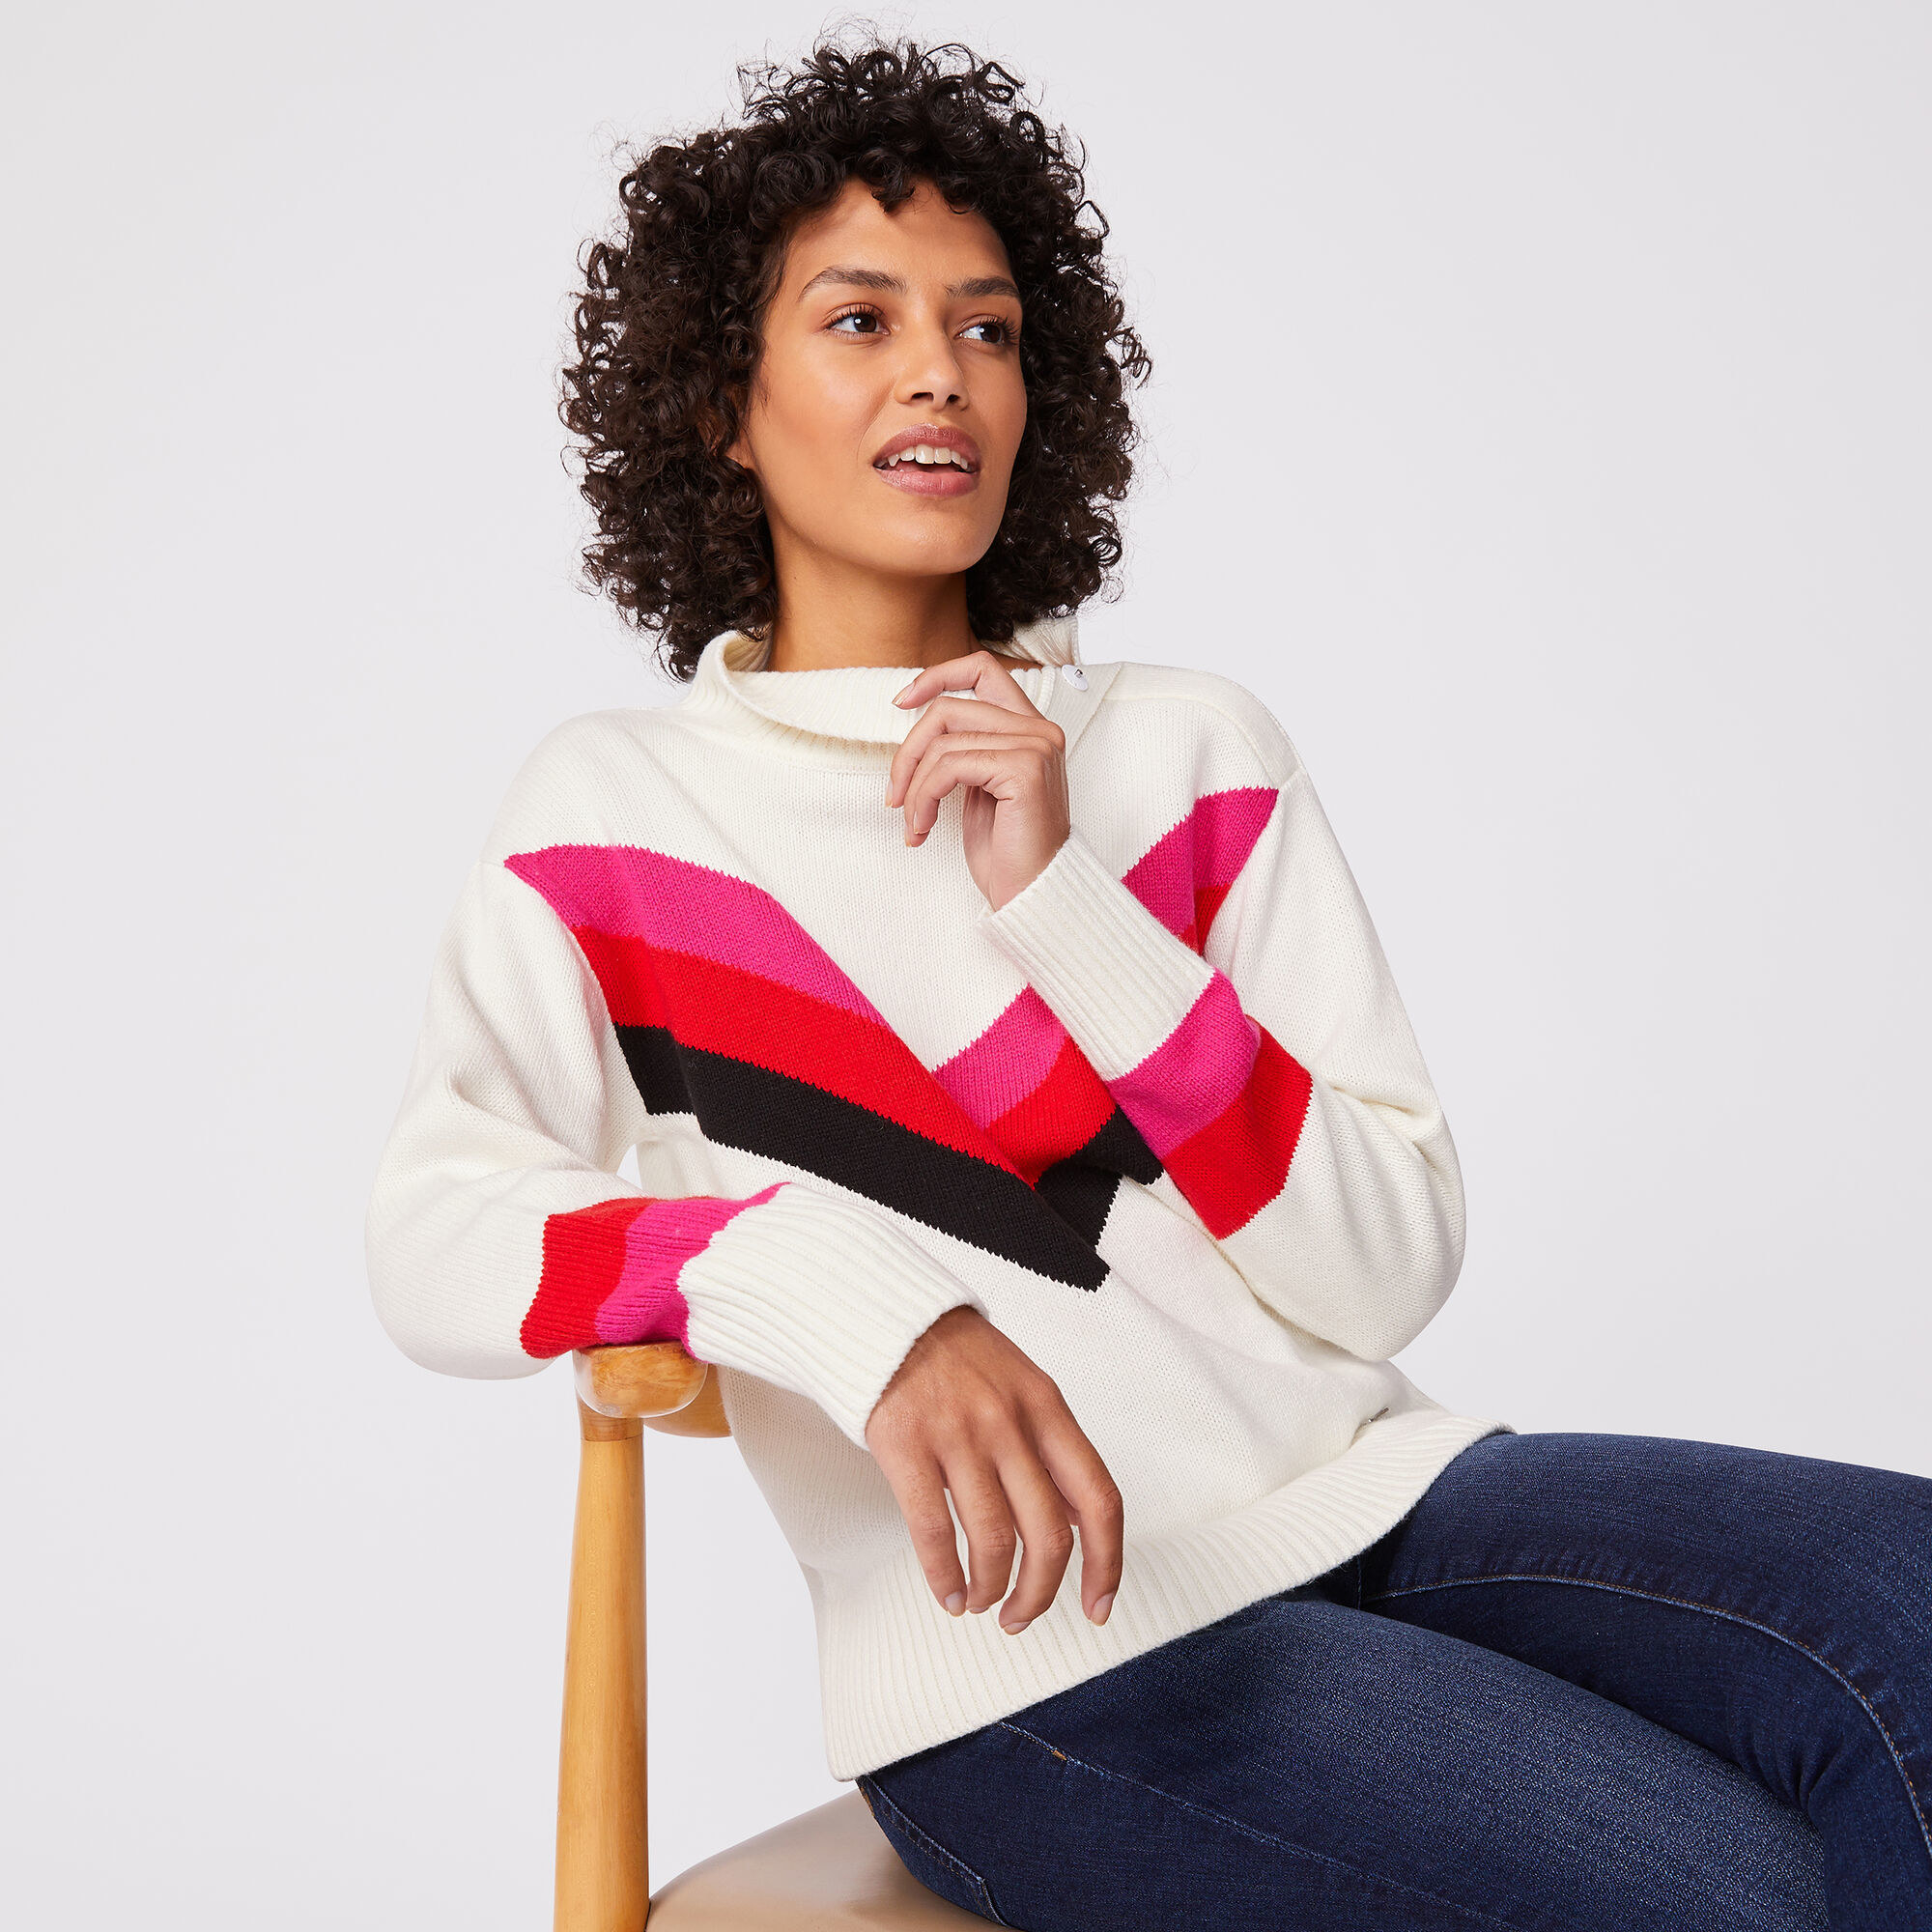 A model in the white sweater with pink, red, and black chevron on the front and accents on the sleeves